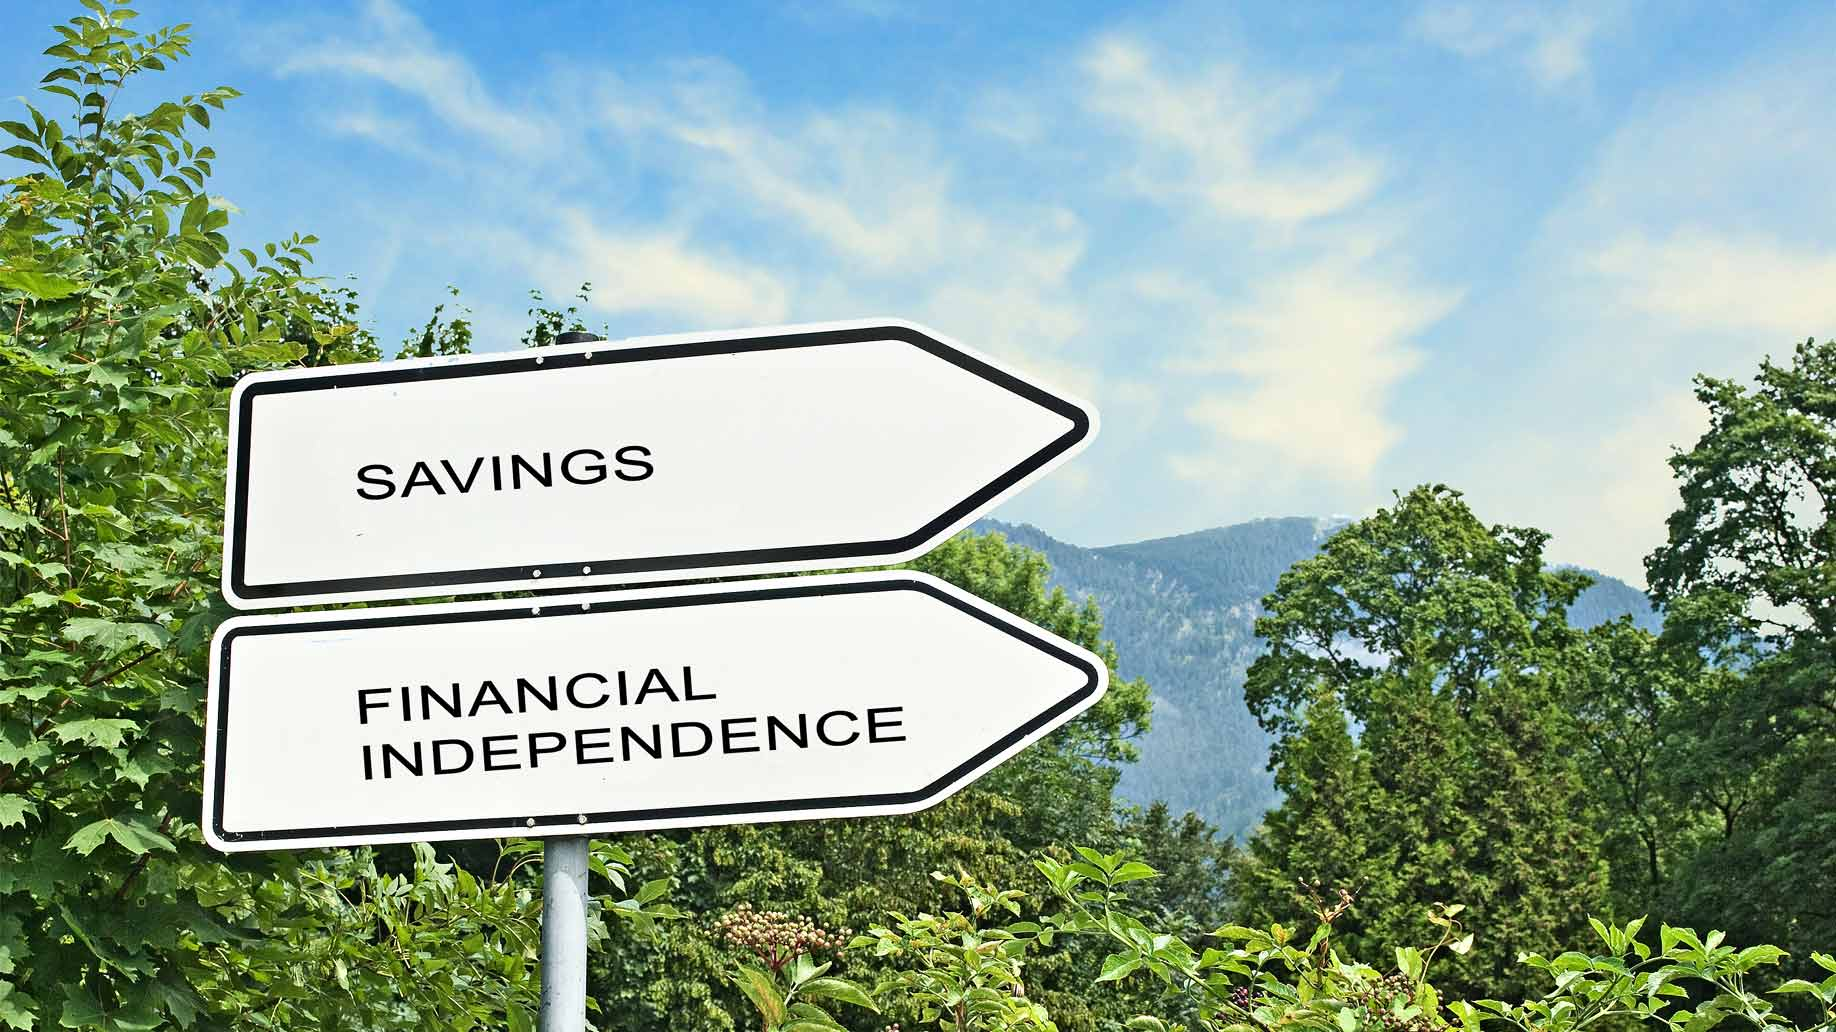 signs pointing toward savings and financial independence